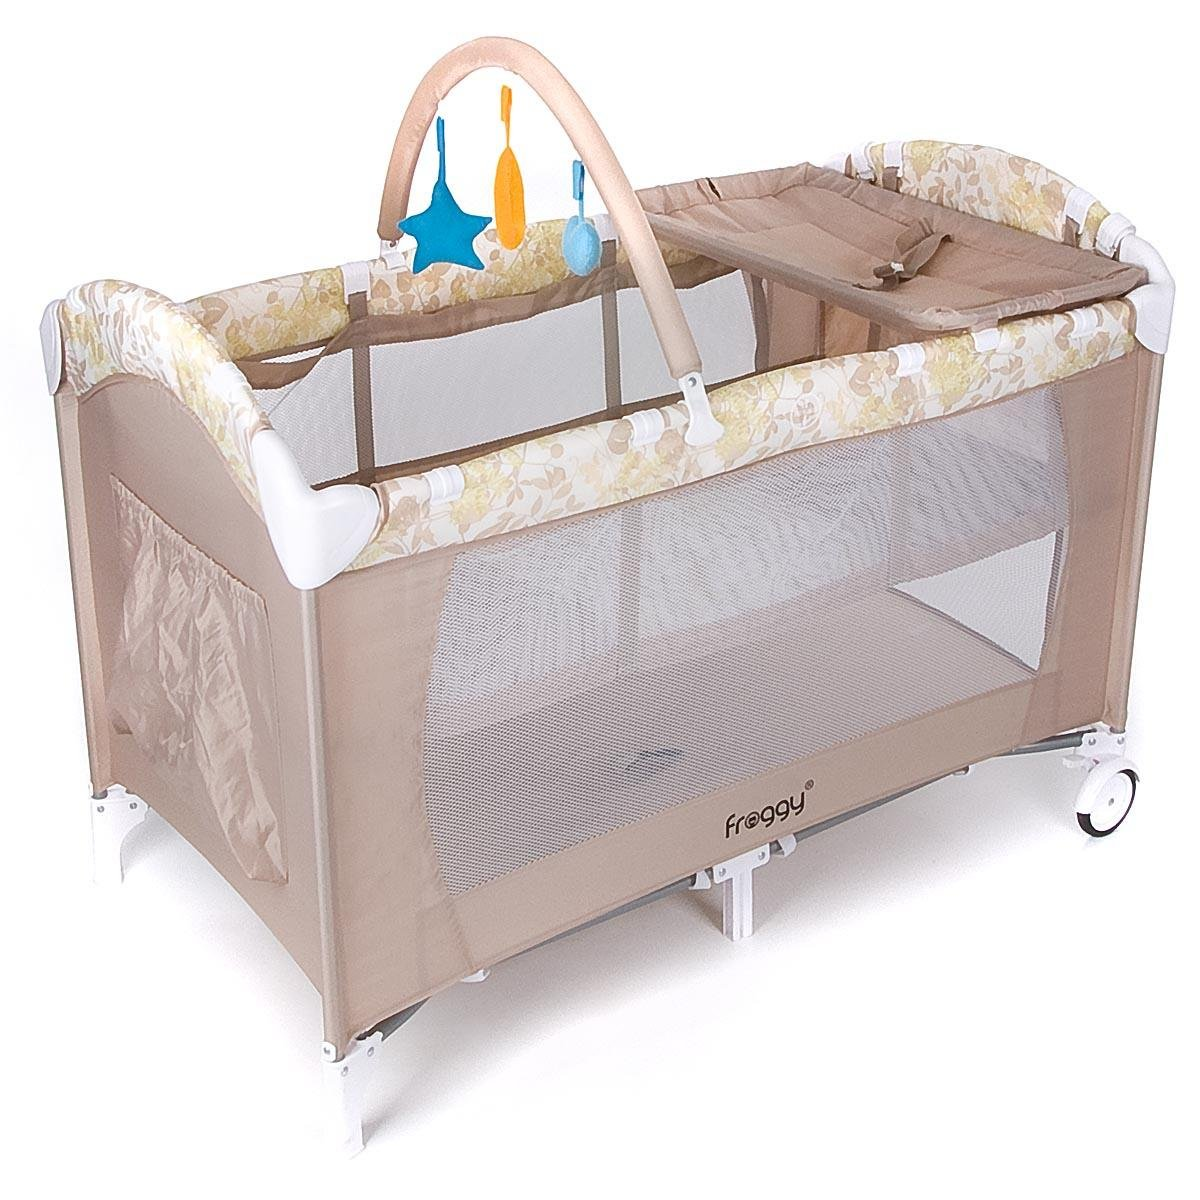 Froggy Baby Bed Travel Cot